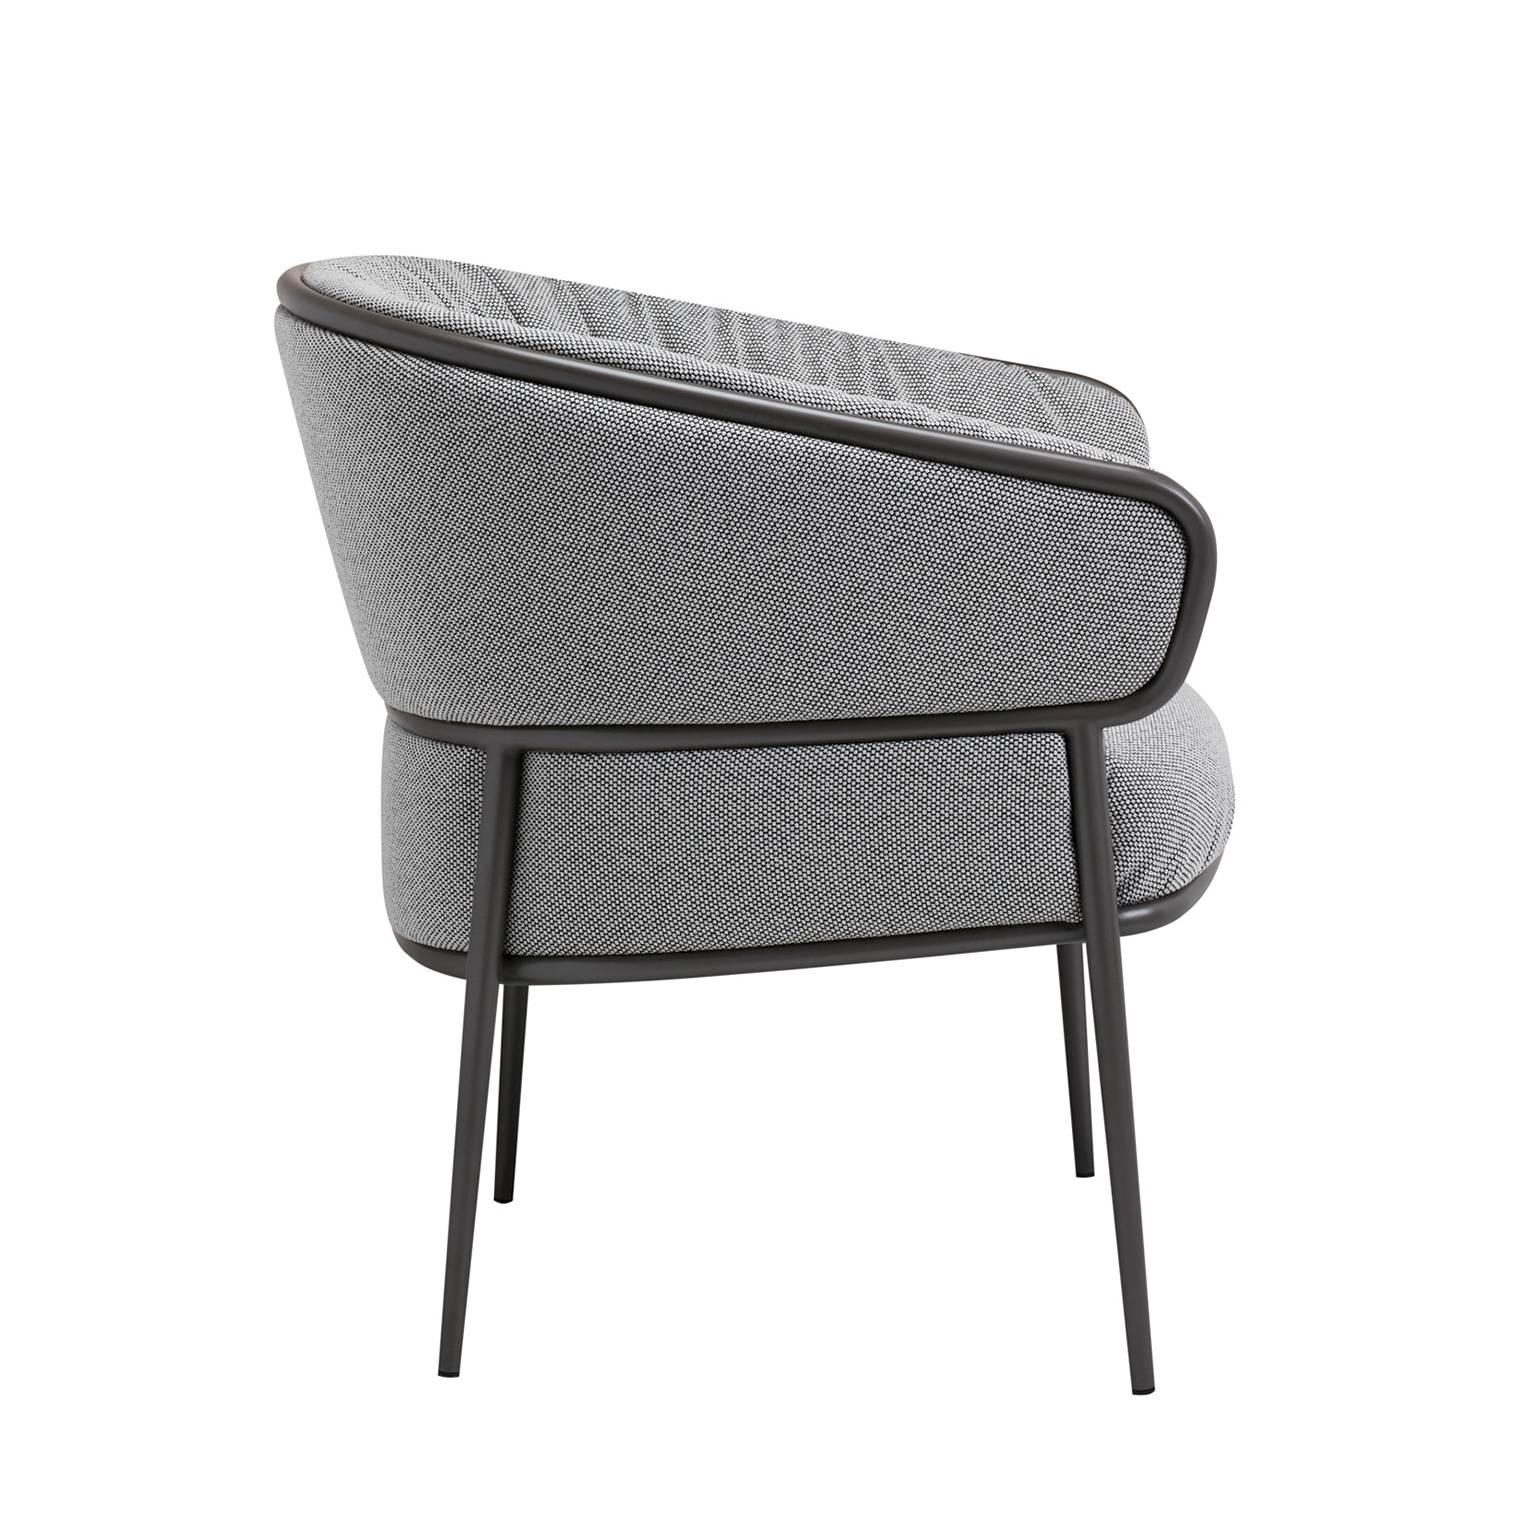 Shu Ying Armchair Upholstered In Leather Or Fabric With Tubular With Fashionable Caira Black Upholstered Arm Chairs (View 17 of 20)